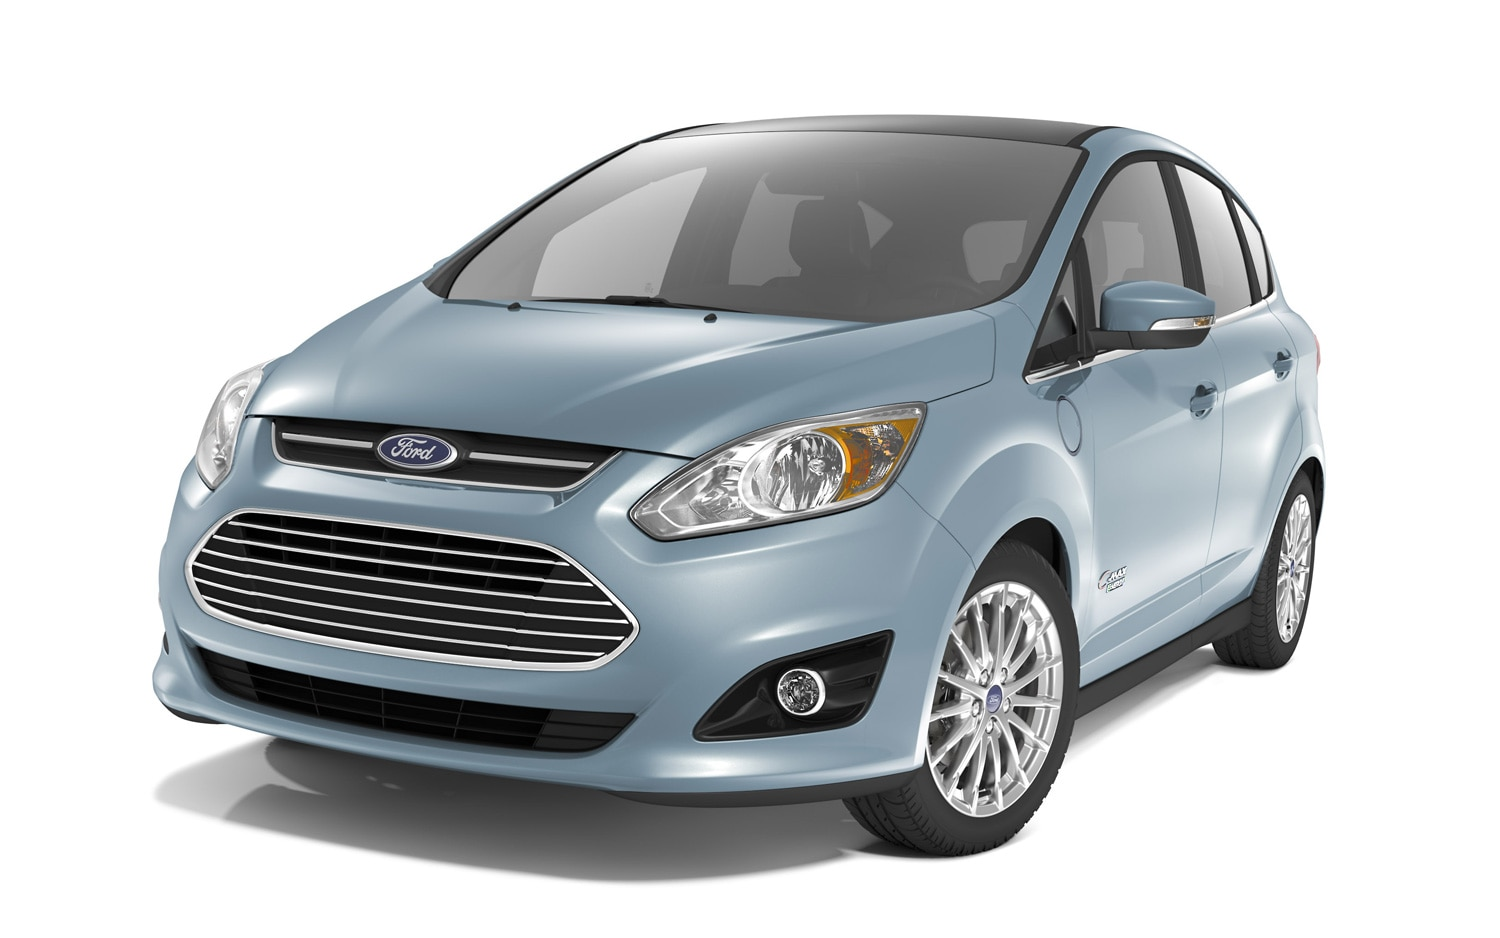 2013 ford c max energi rated for 21 miles of electric 620 miles total range. Black Bedroom Furniture Sets. Home Design Ideas